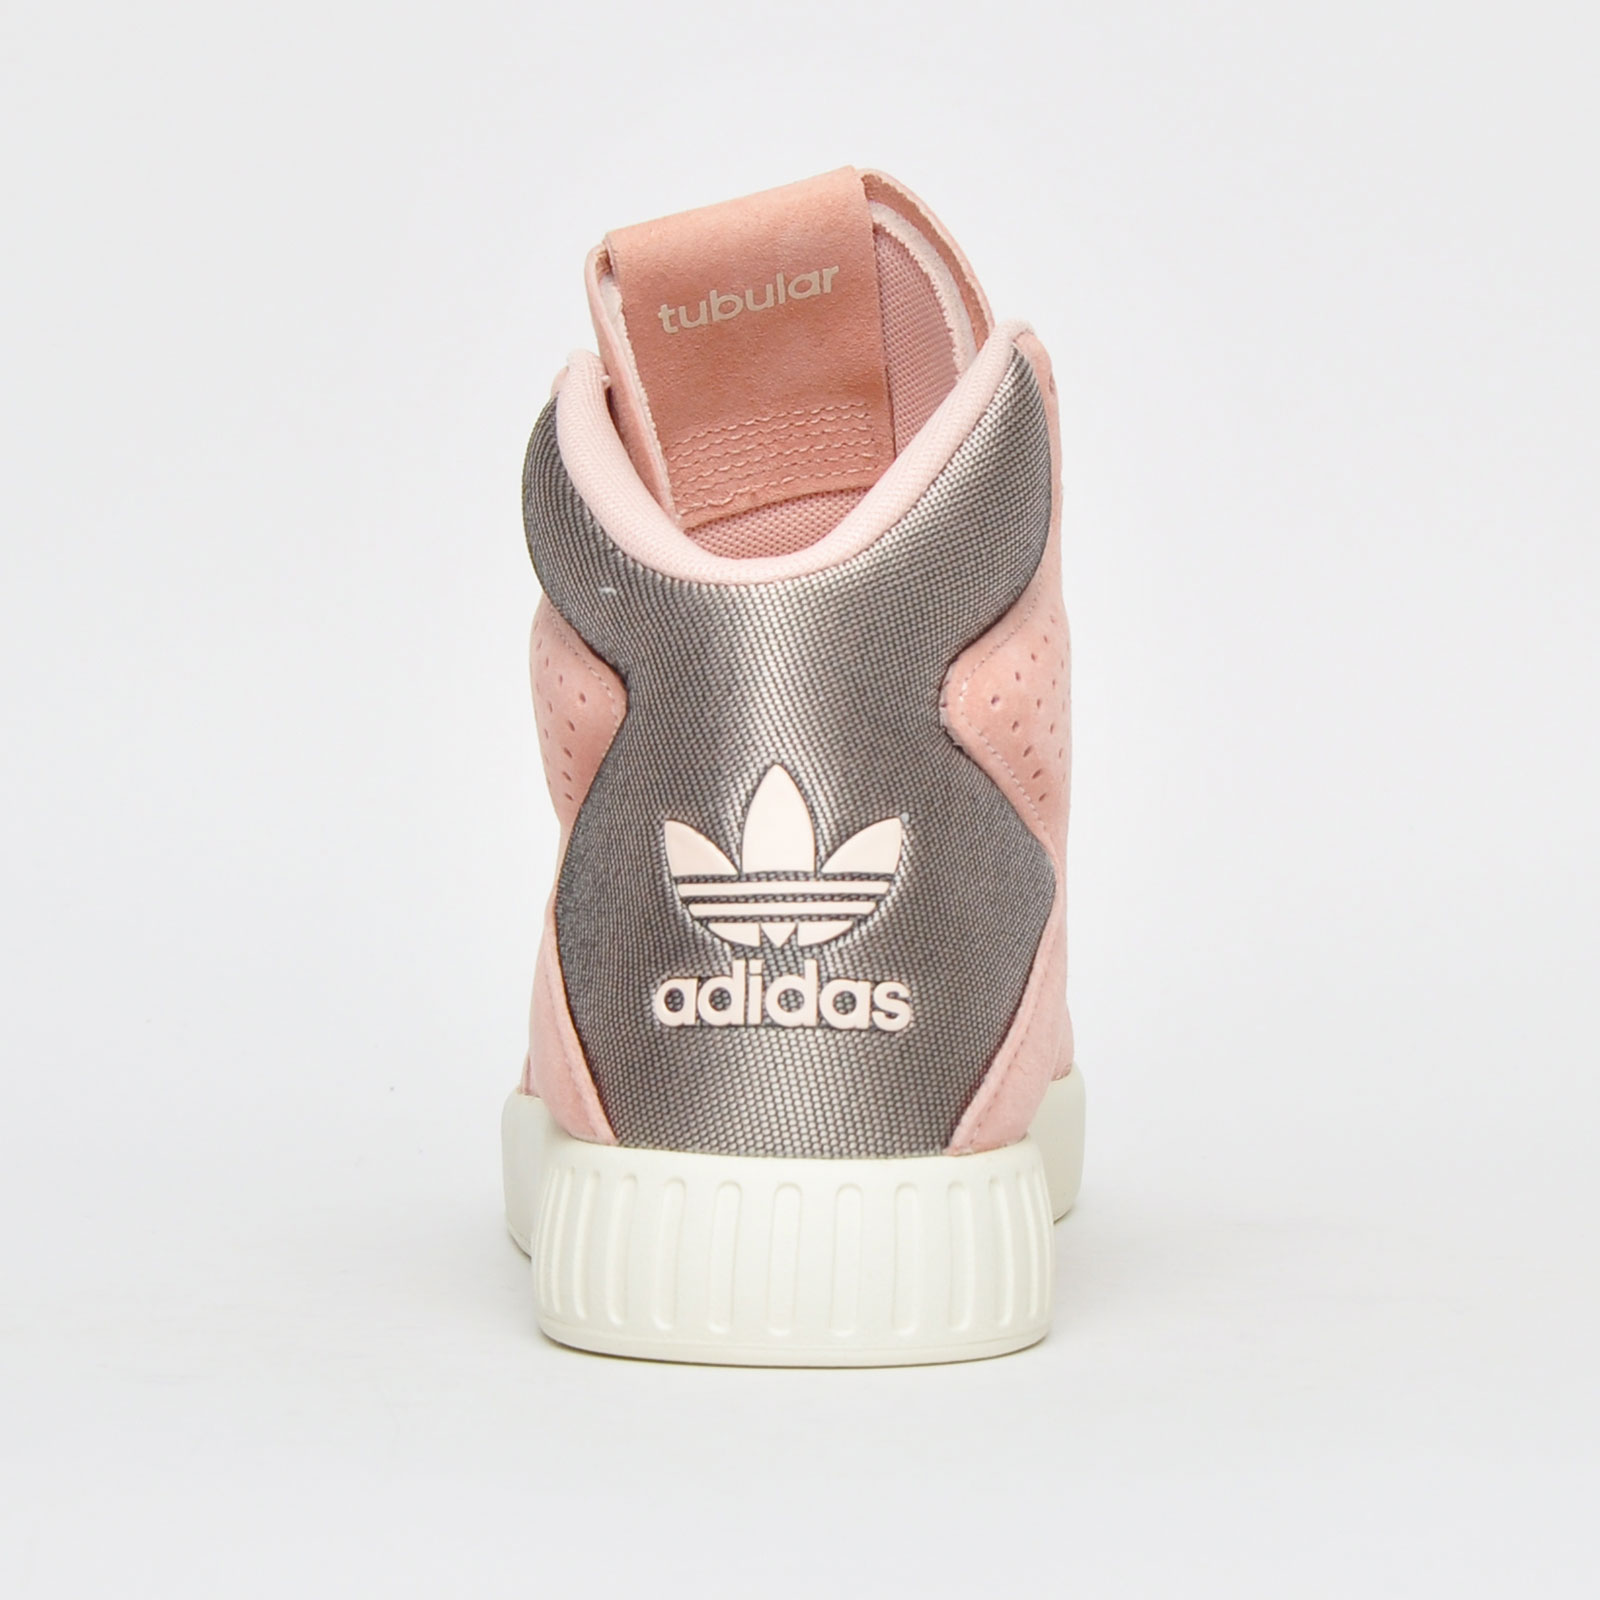 separation shoes 36d3a 6edb8 Adidas Originals Tubular Invader 2.0 Women s Girls Hi Top Fashion Trainers  Pink